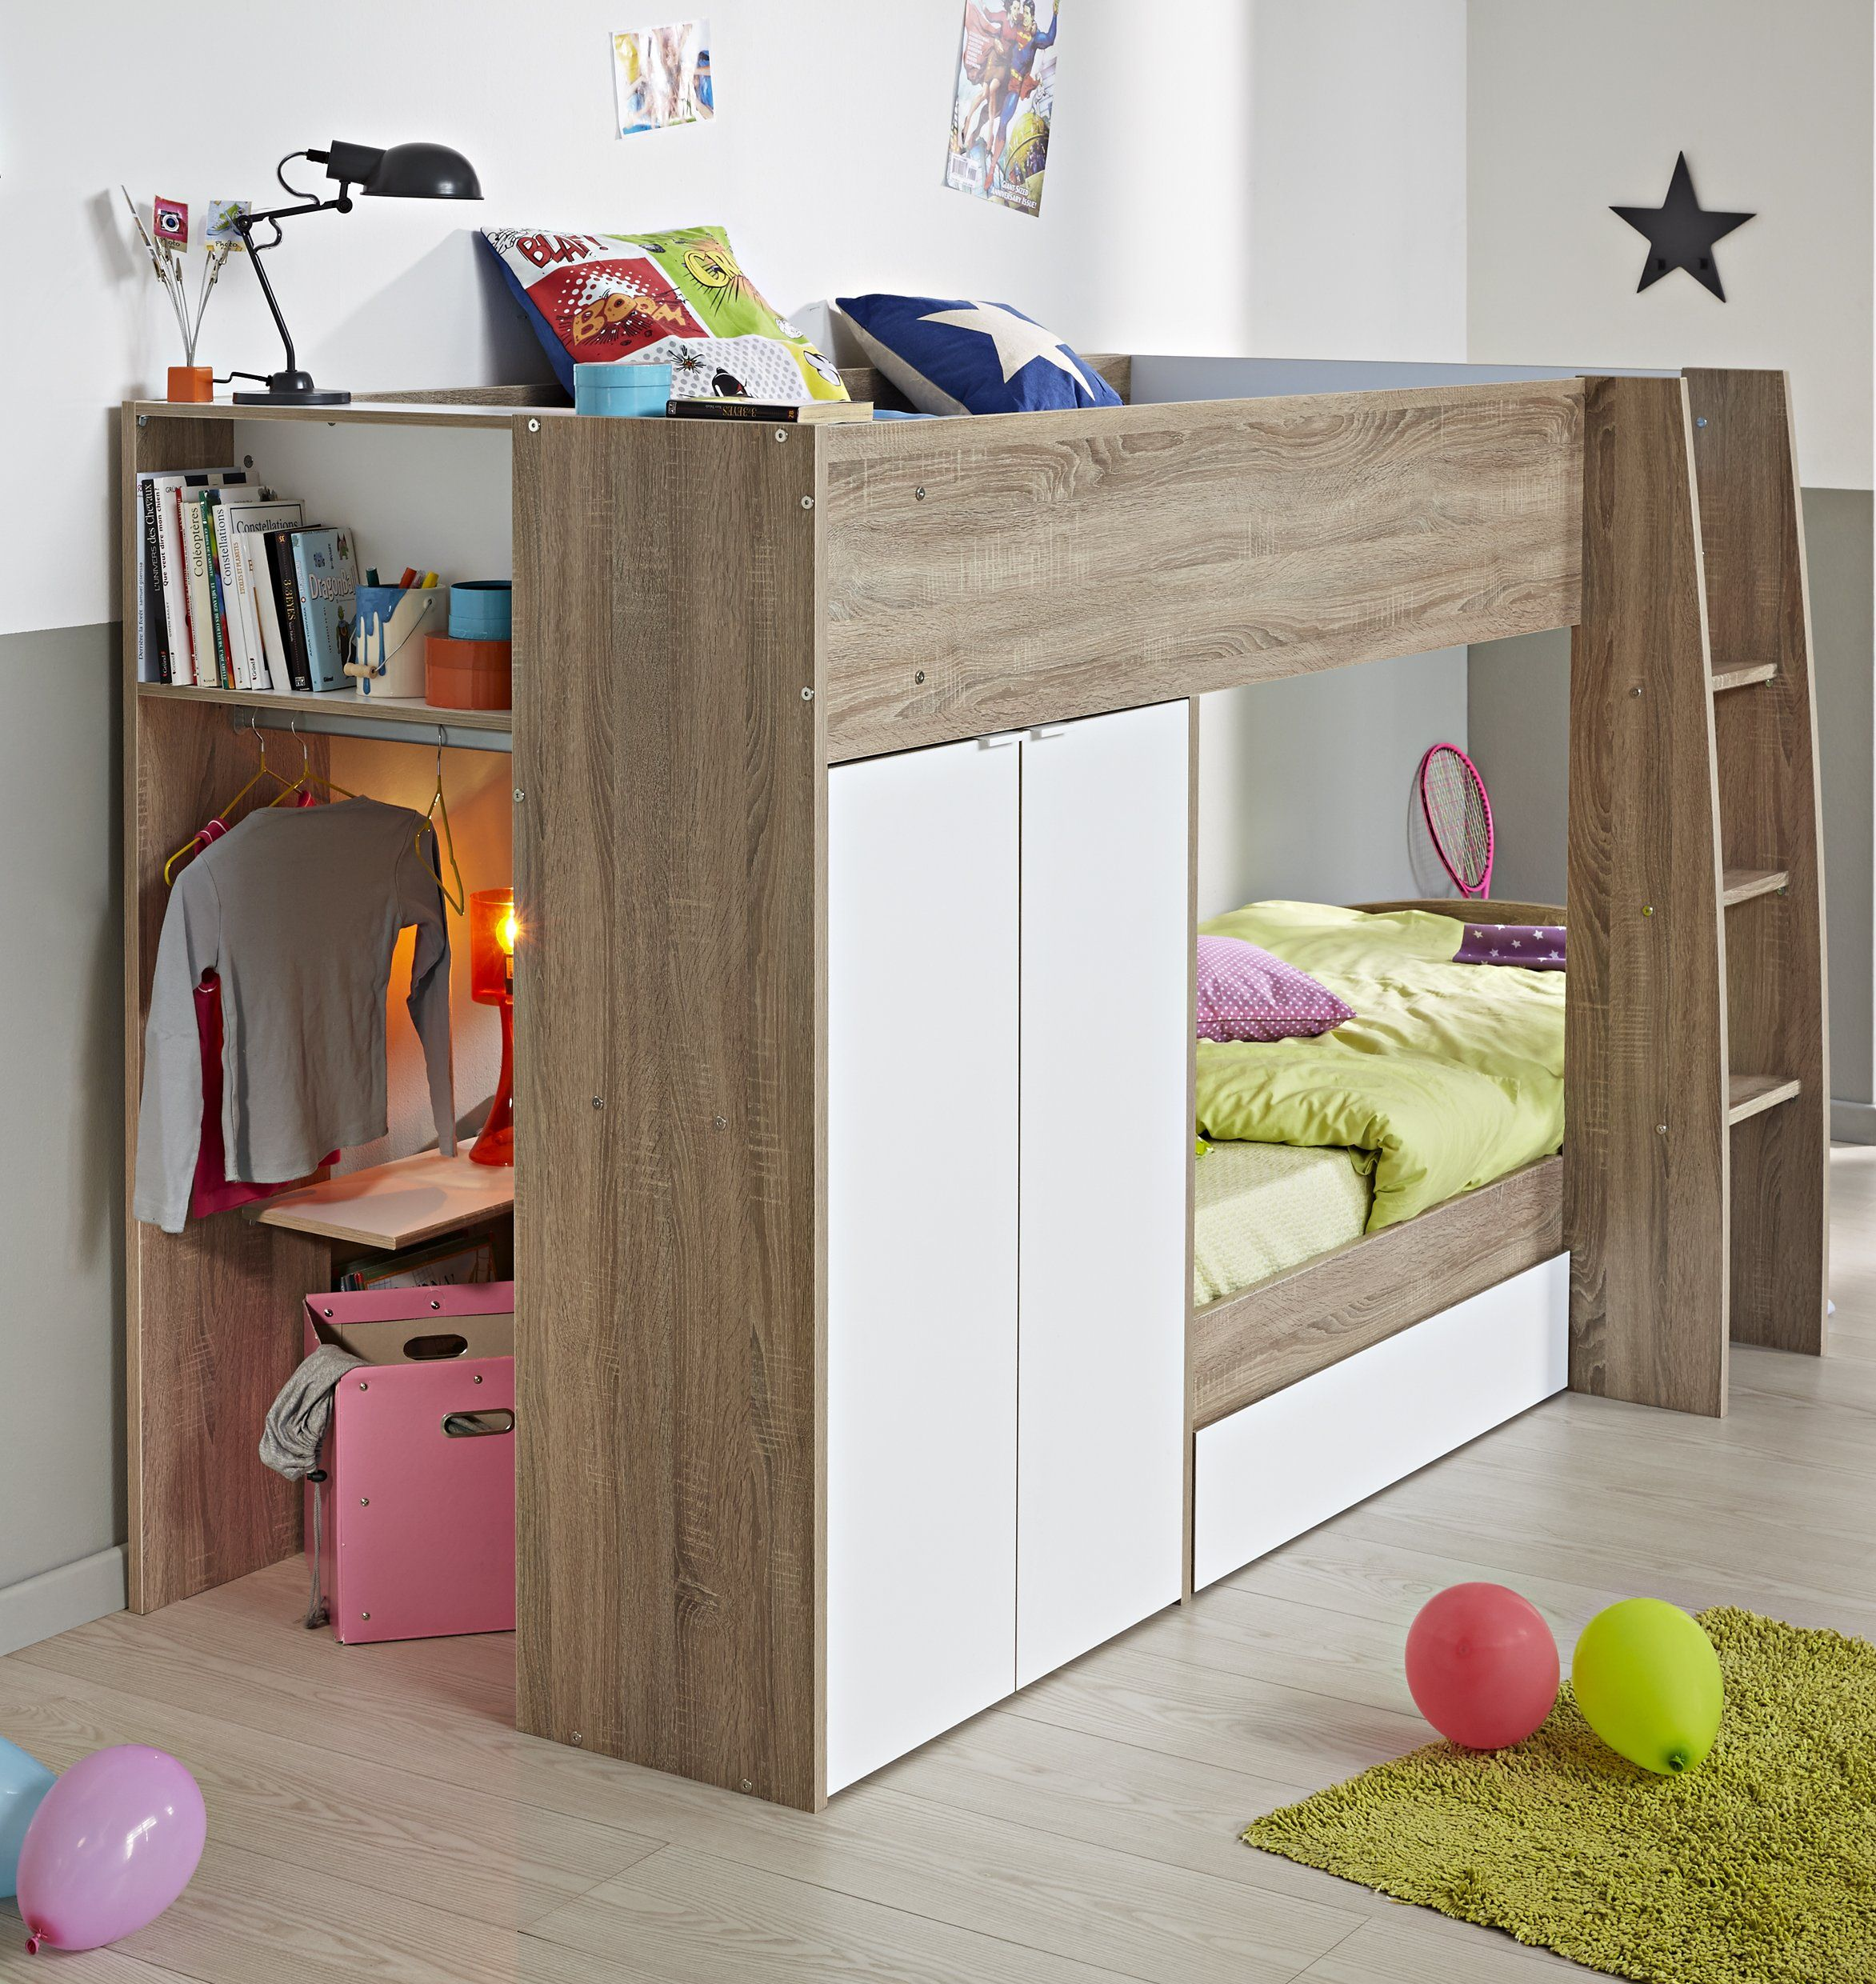 Pictures for kids bedrooms cool kids bedroom bedrooms for Kids bed design